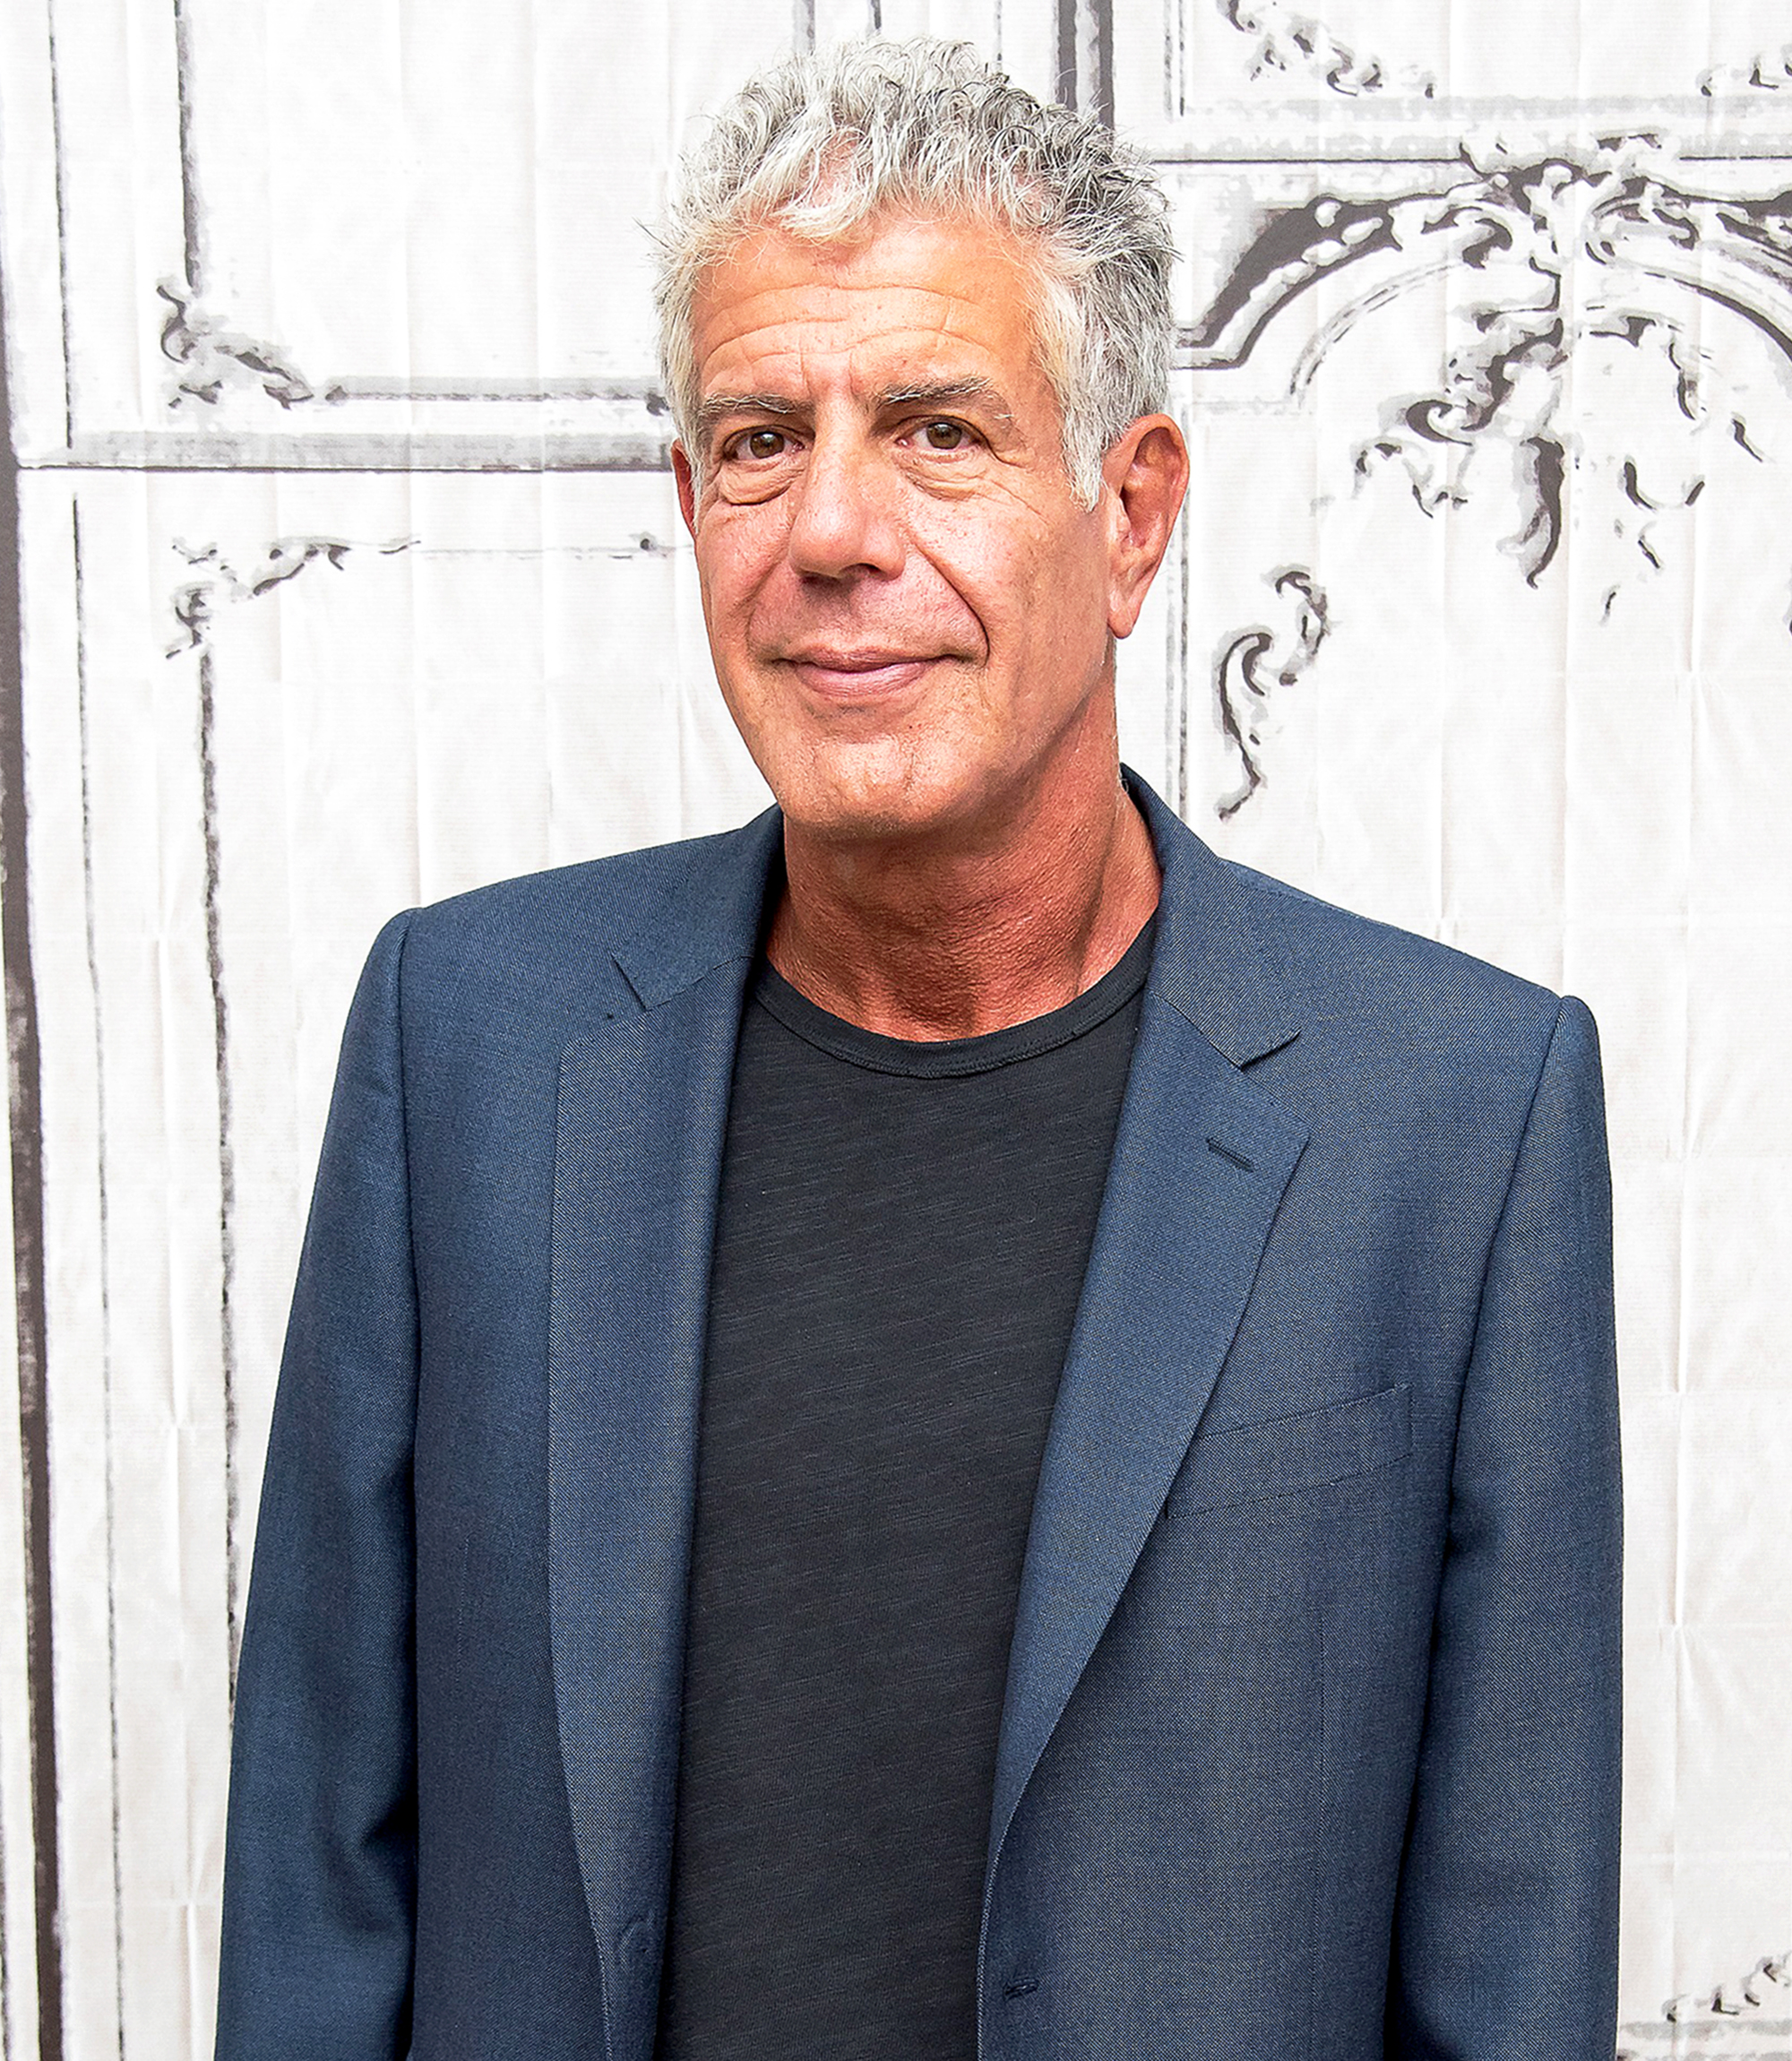 No drugs or alcohol in Bourdain's body